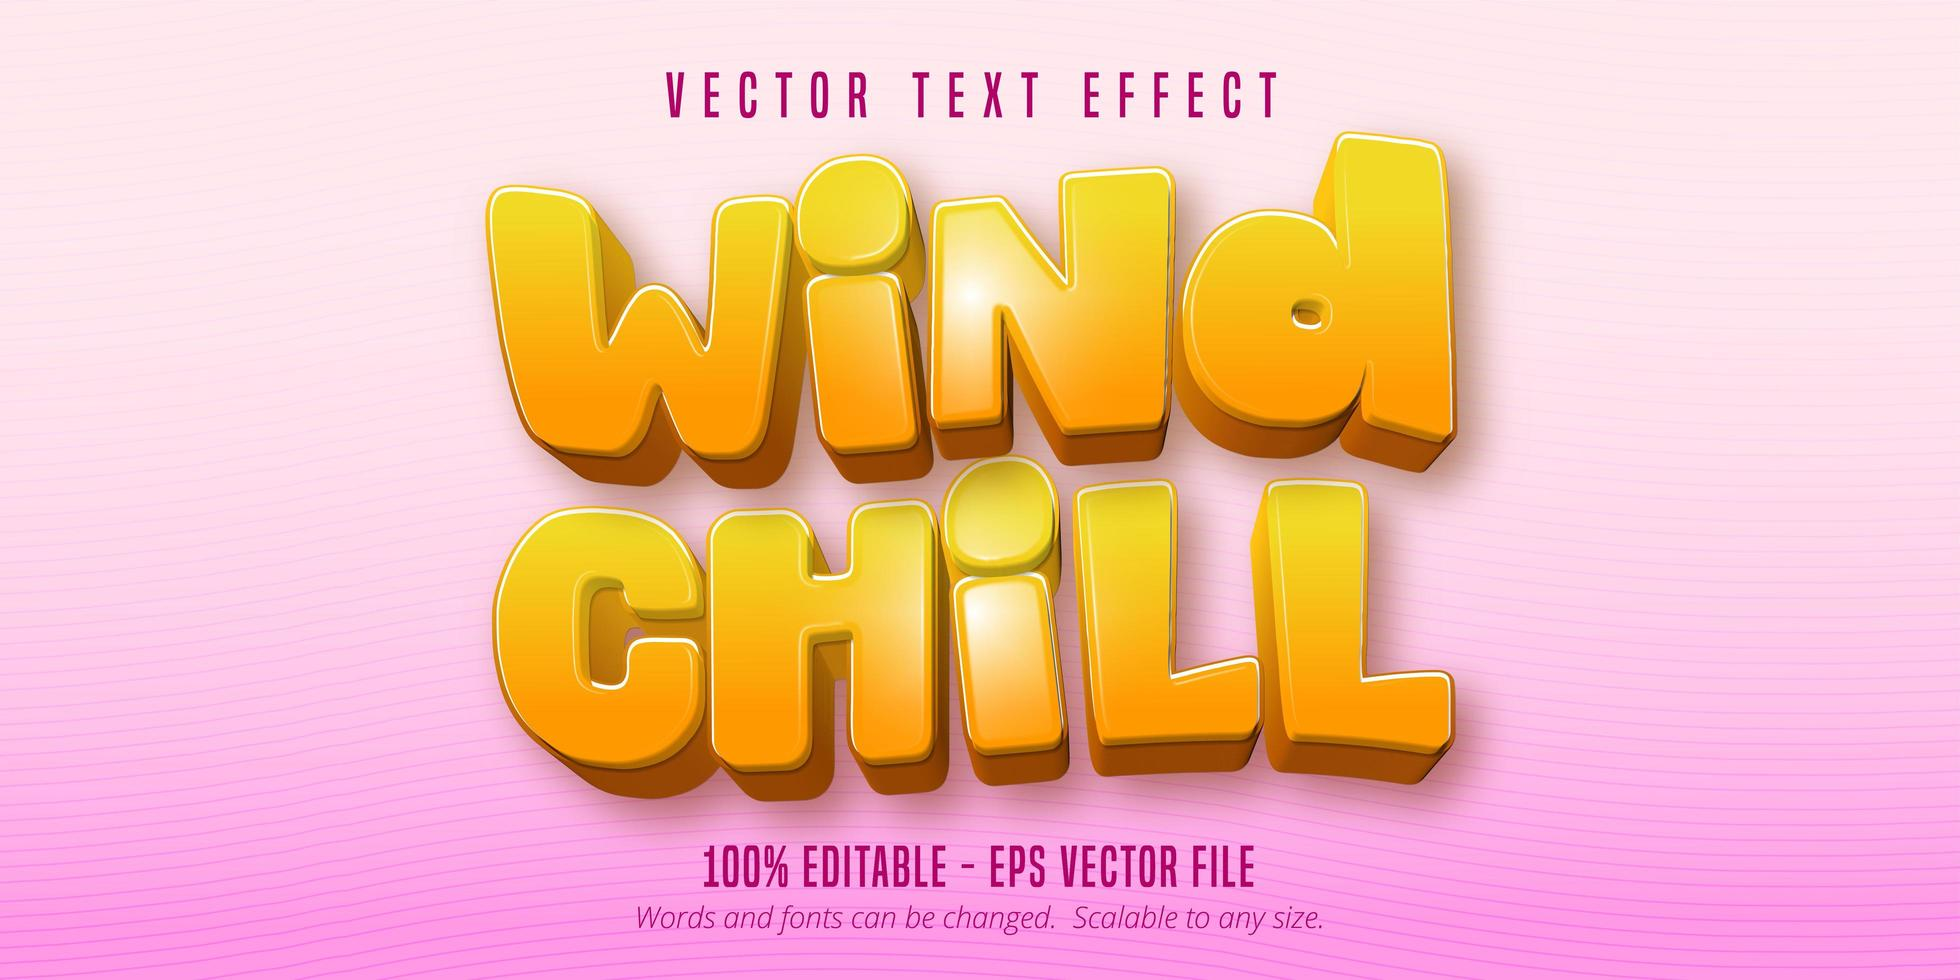 Wind chill text effect vector